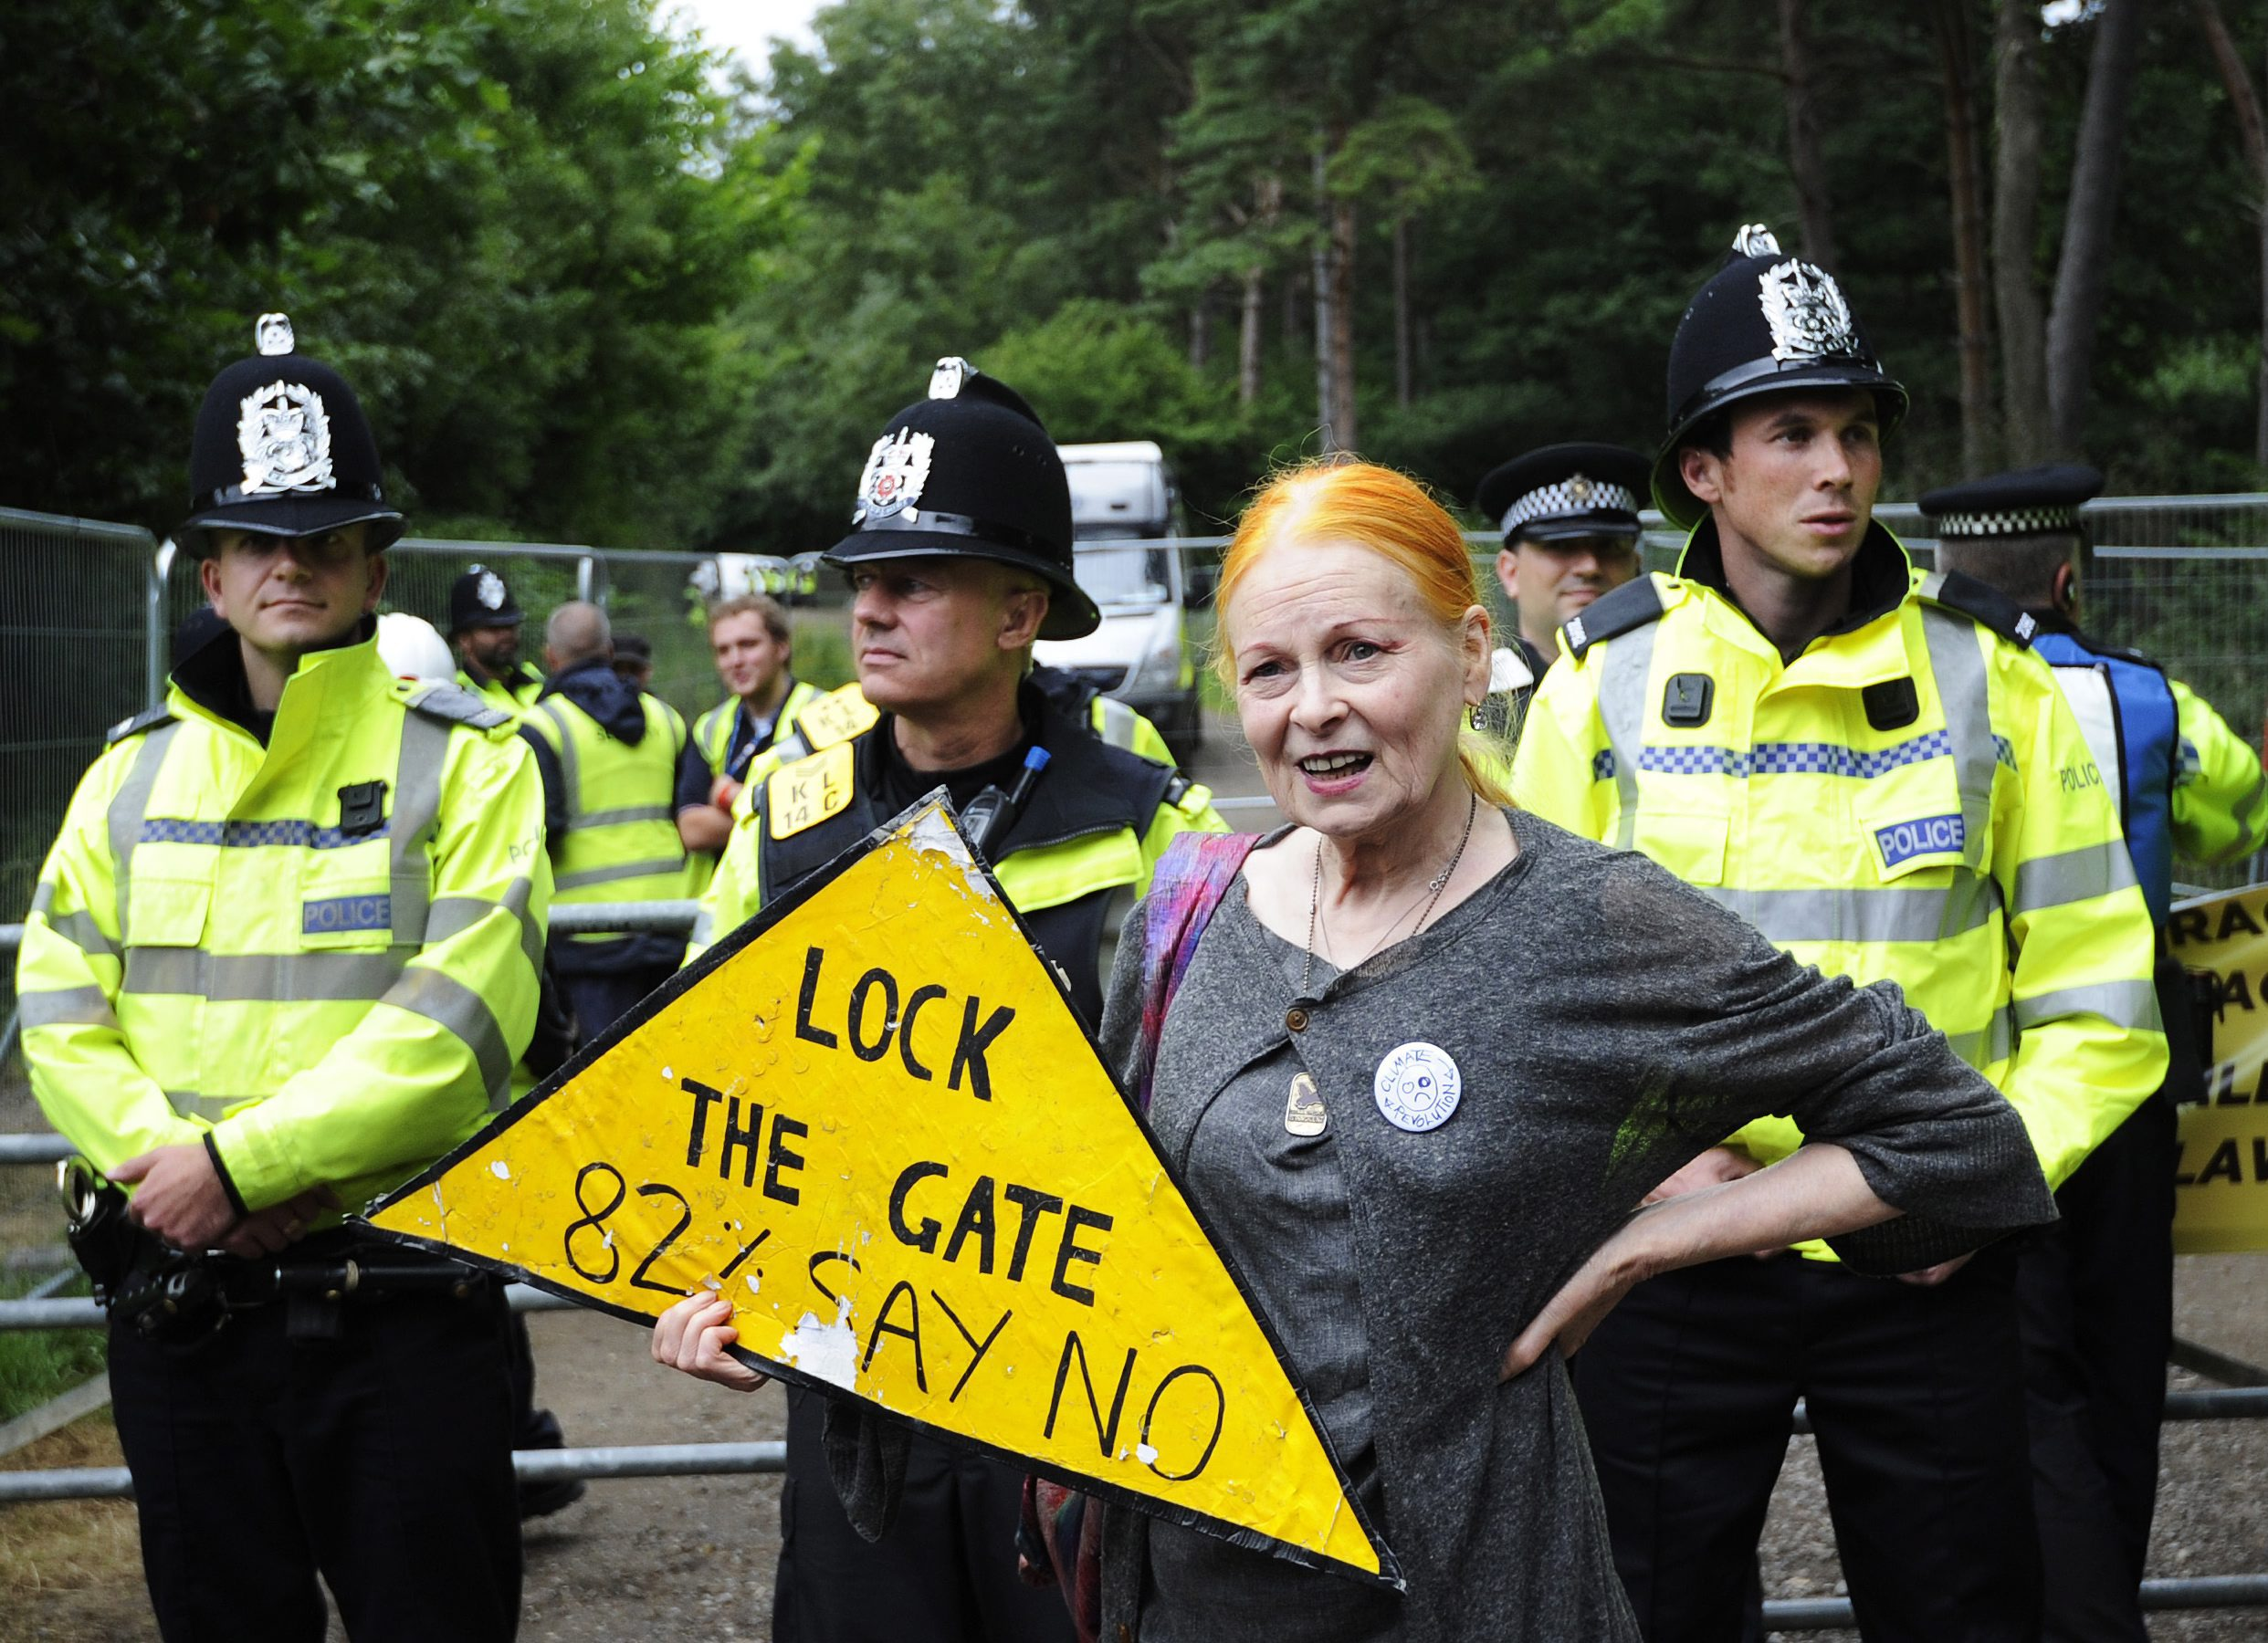 Gallery: Vivienne Westwood leads Cuadrilla Resources anti-fracking protest in Balcome West Sussex